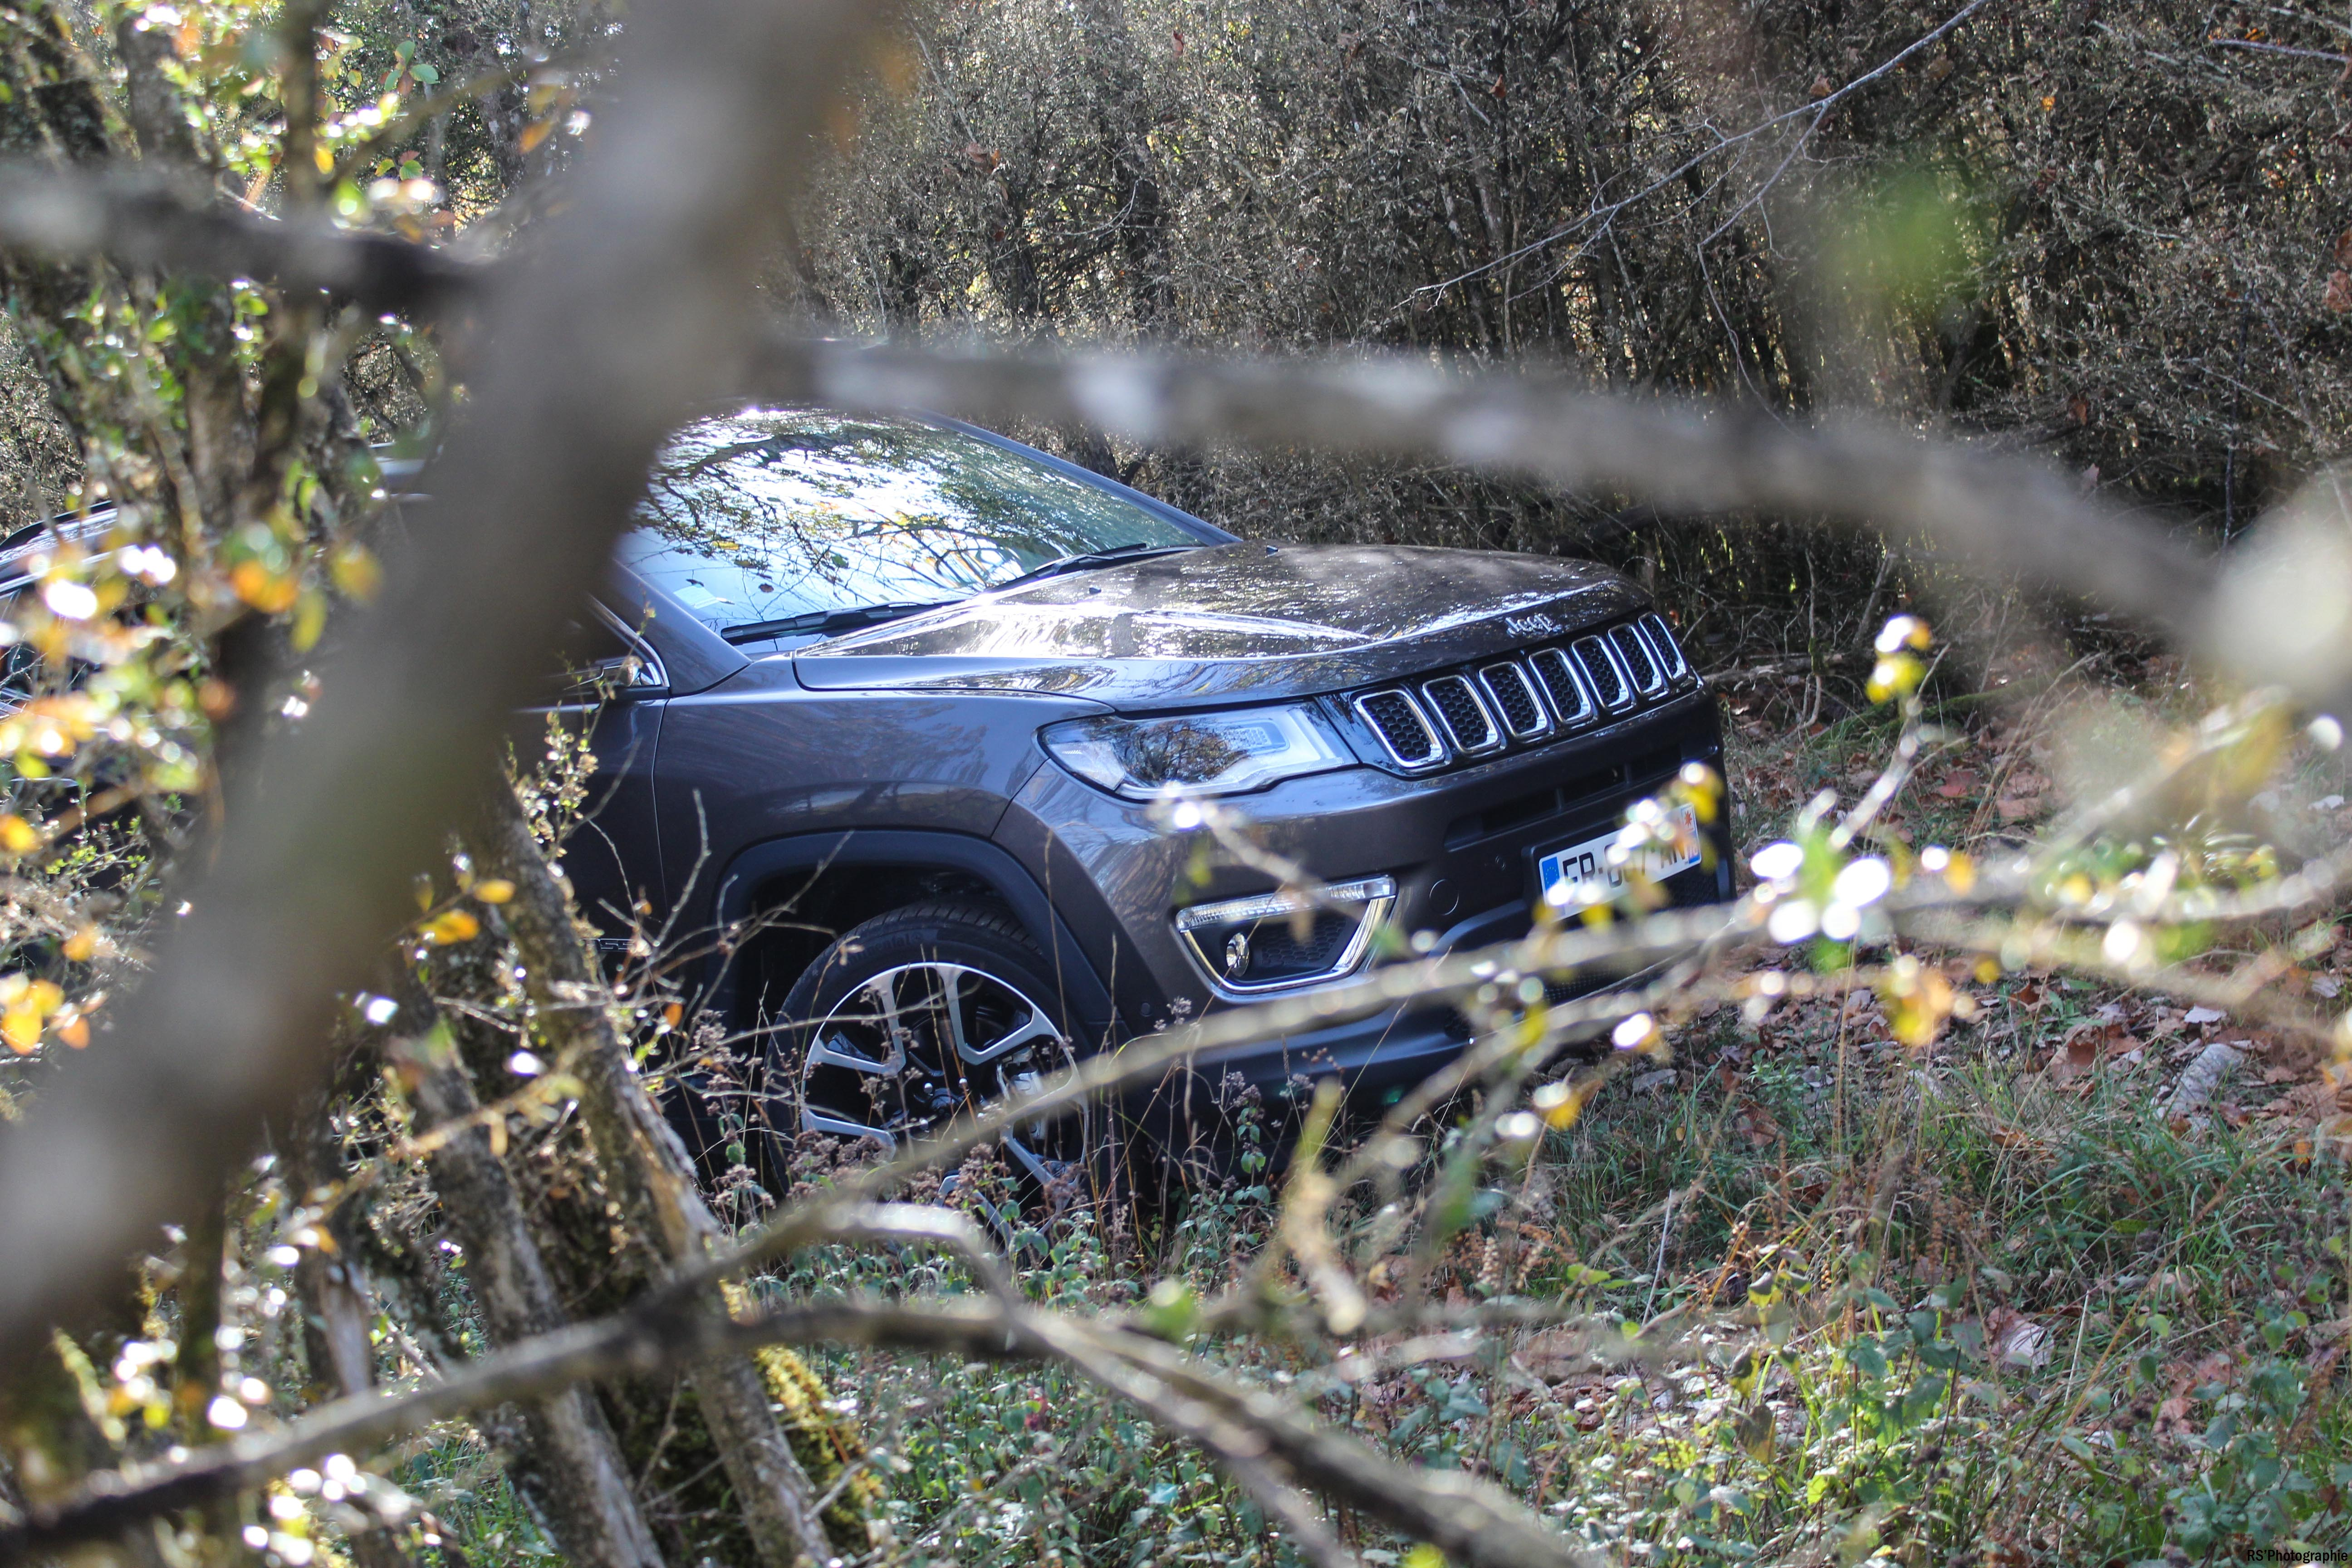 jeepcompass37-jeep-compass-avant-front-Arnaud Demasier-RSPhotographie